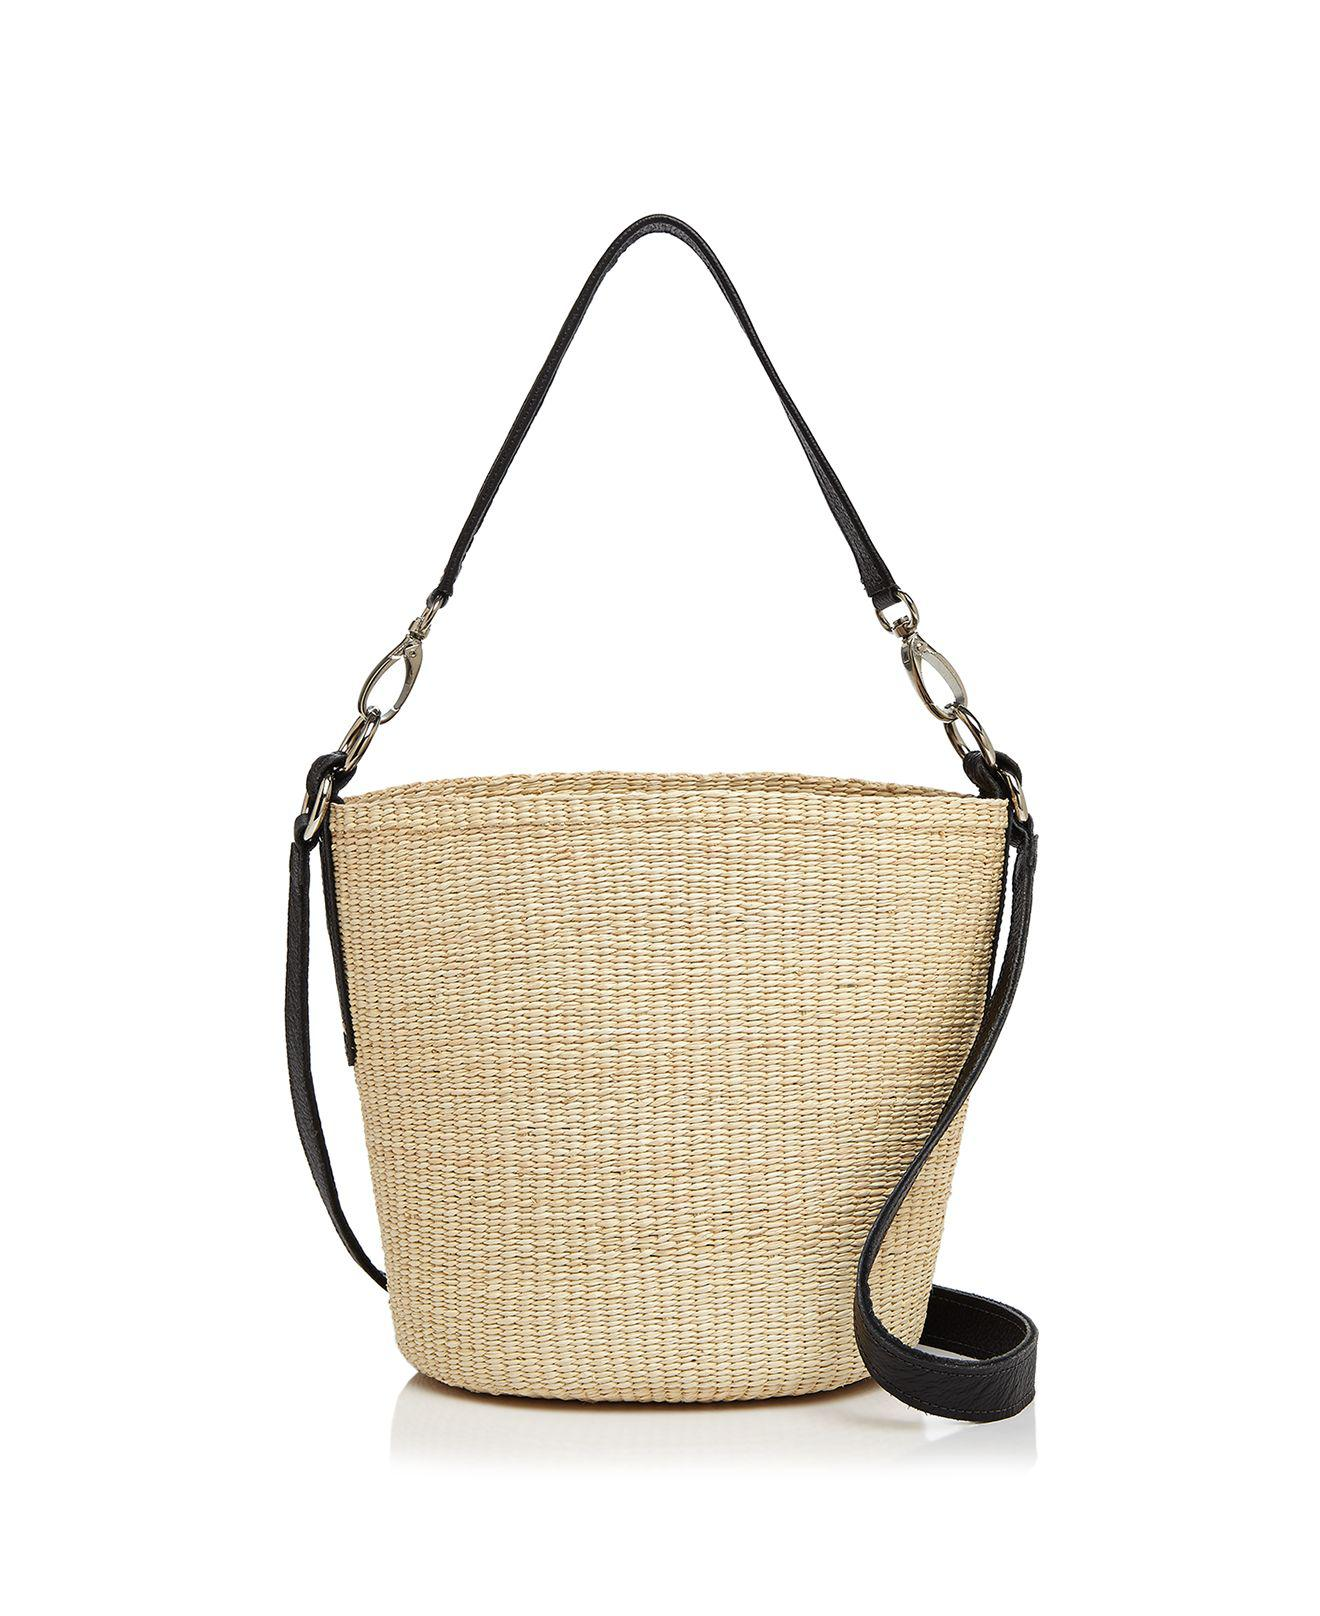 natural oval straw shoulder bag Sensi Studio Buy Cheap Pay With Visa Discount Release Dates Recommend For Sale wFqdYBUbh